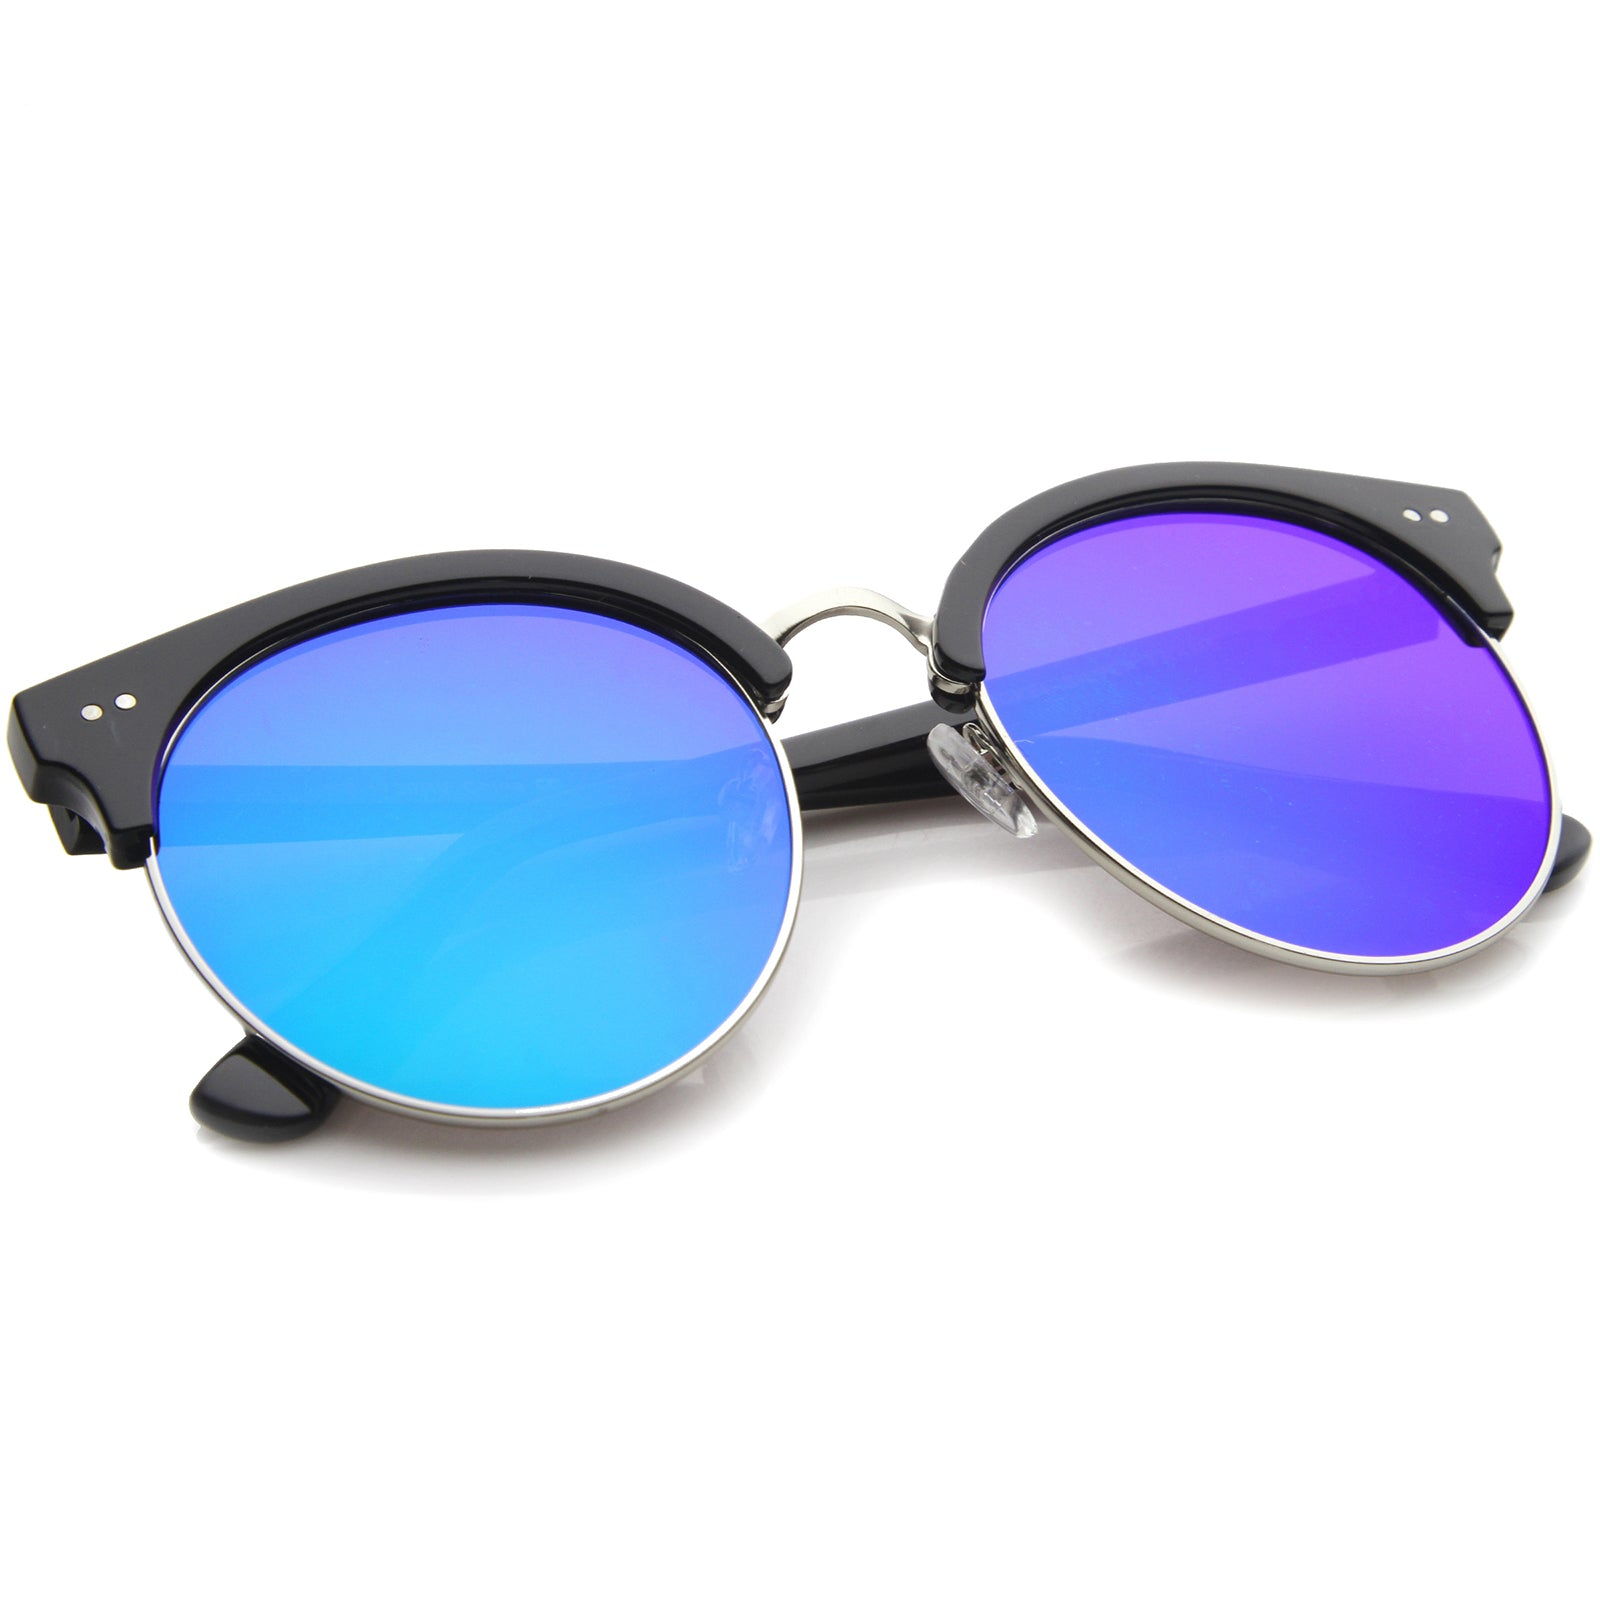 Womens Oversized Sunglasses With UV400 Protected Mirrored Lens - sunglass.la - 8